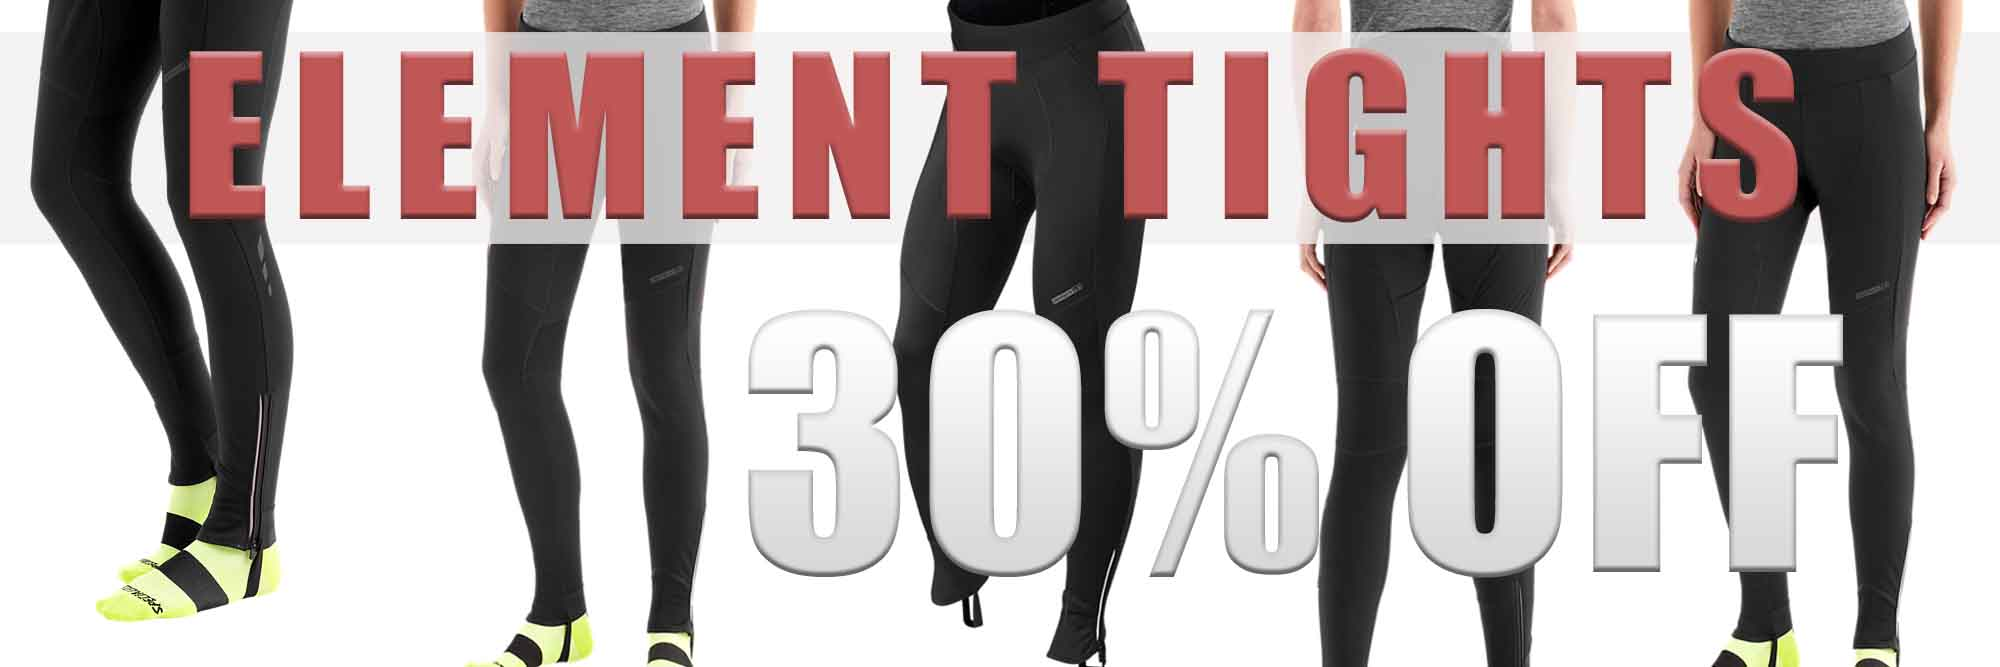 Element Tights 30% Off